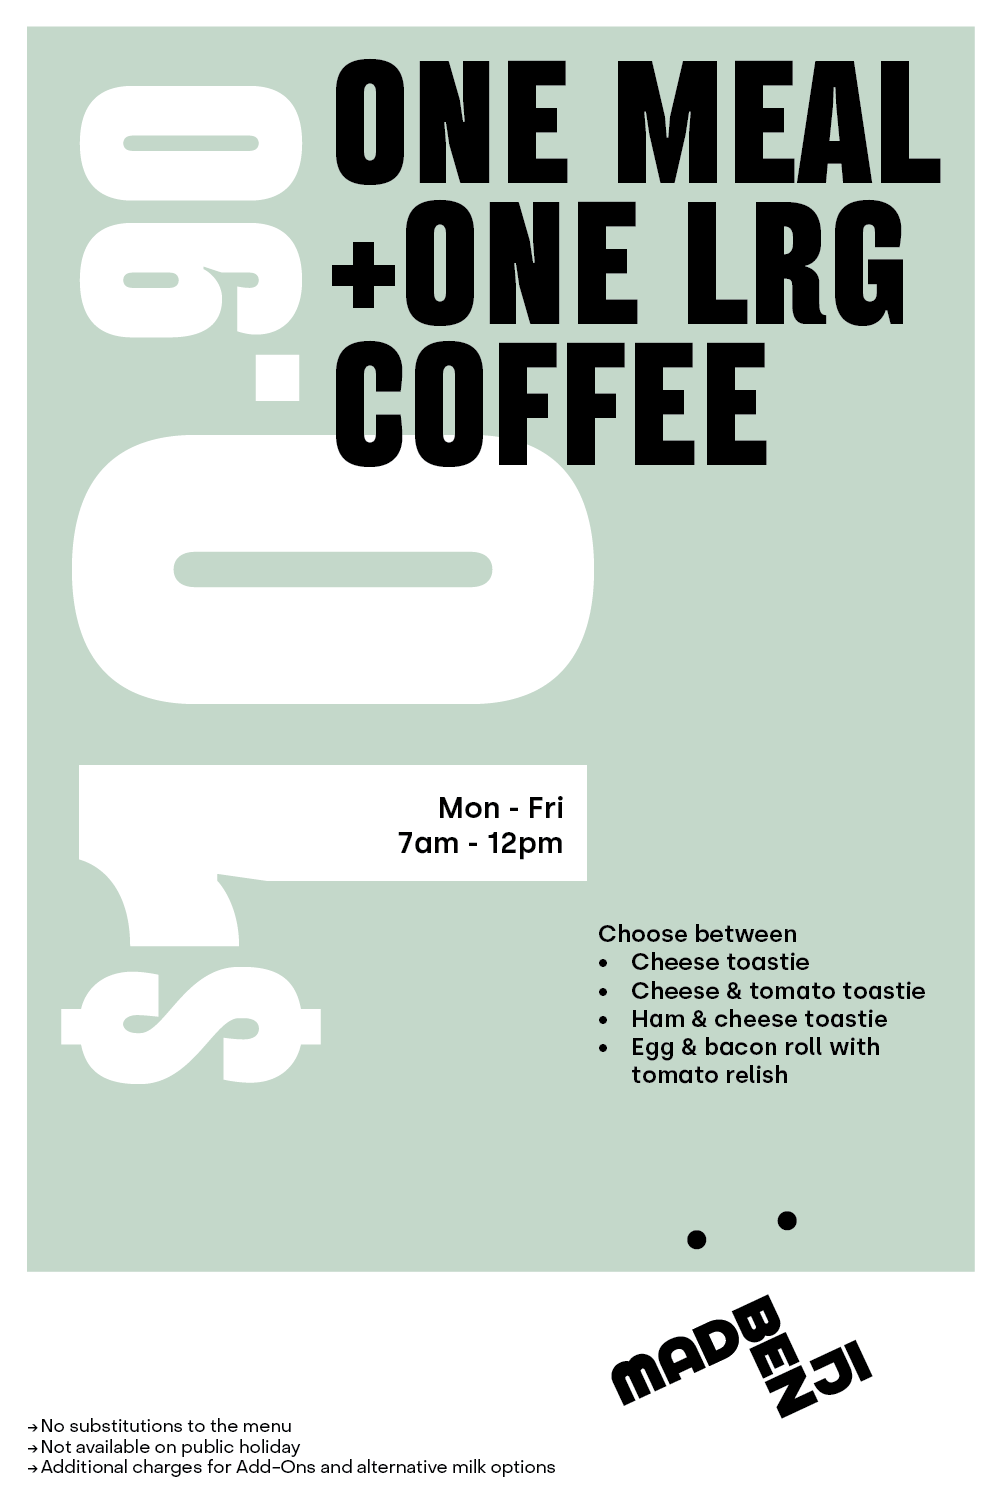 One meal + one large coffee for $10.90